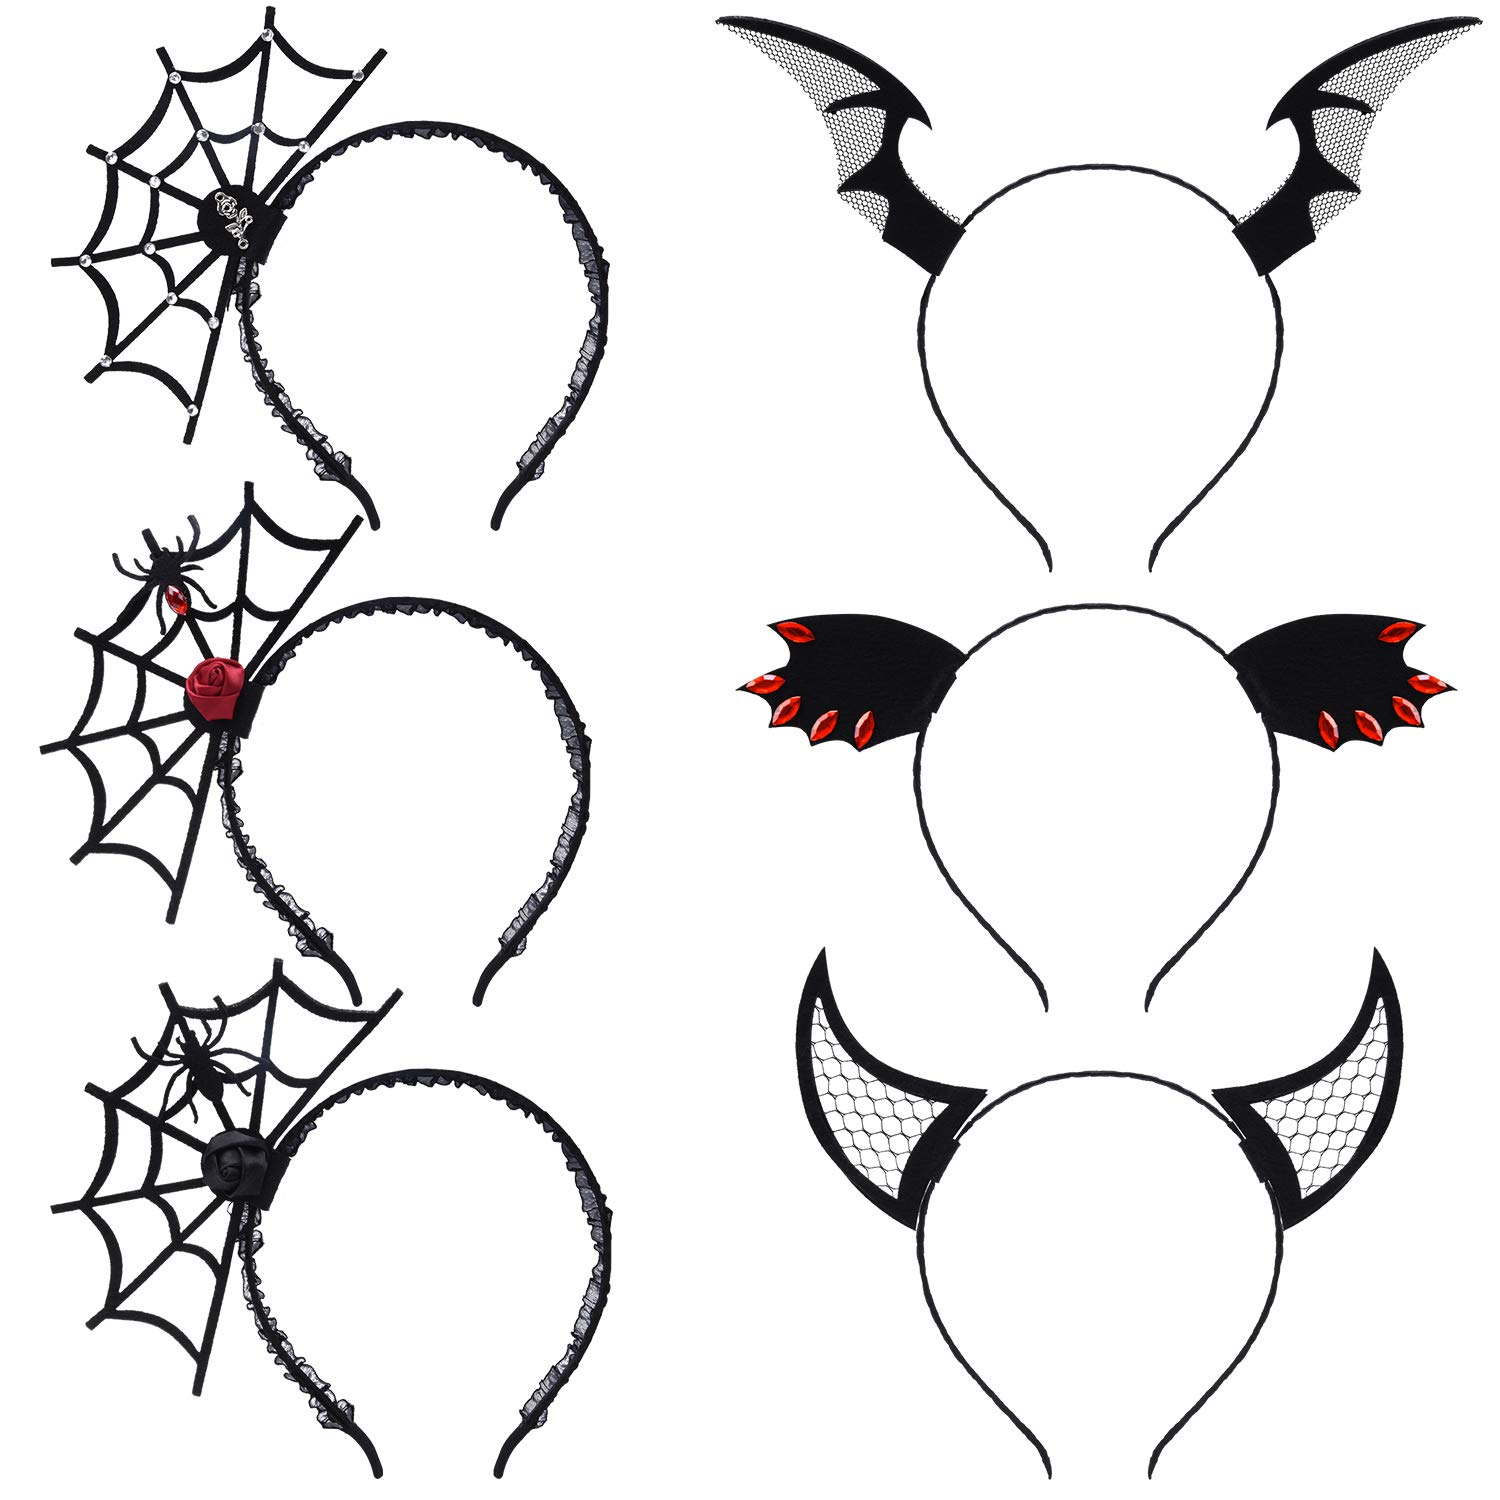 ZOYLINK 6 PCS Halloween Headwear - Spider Headband, Devil Headband and Bat Headband Carnival Carnival Halloween Girl Lady